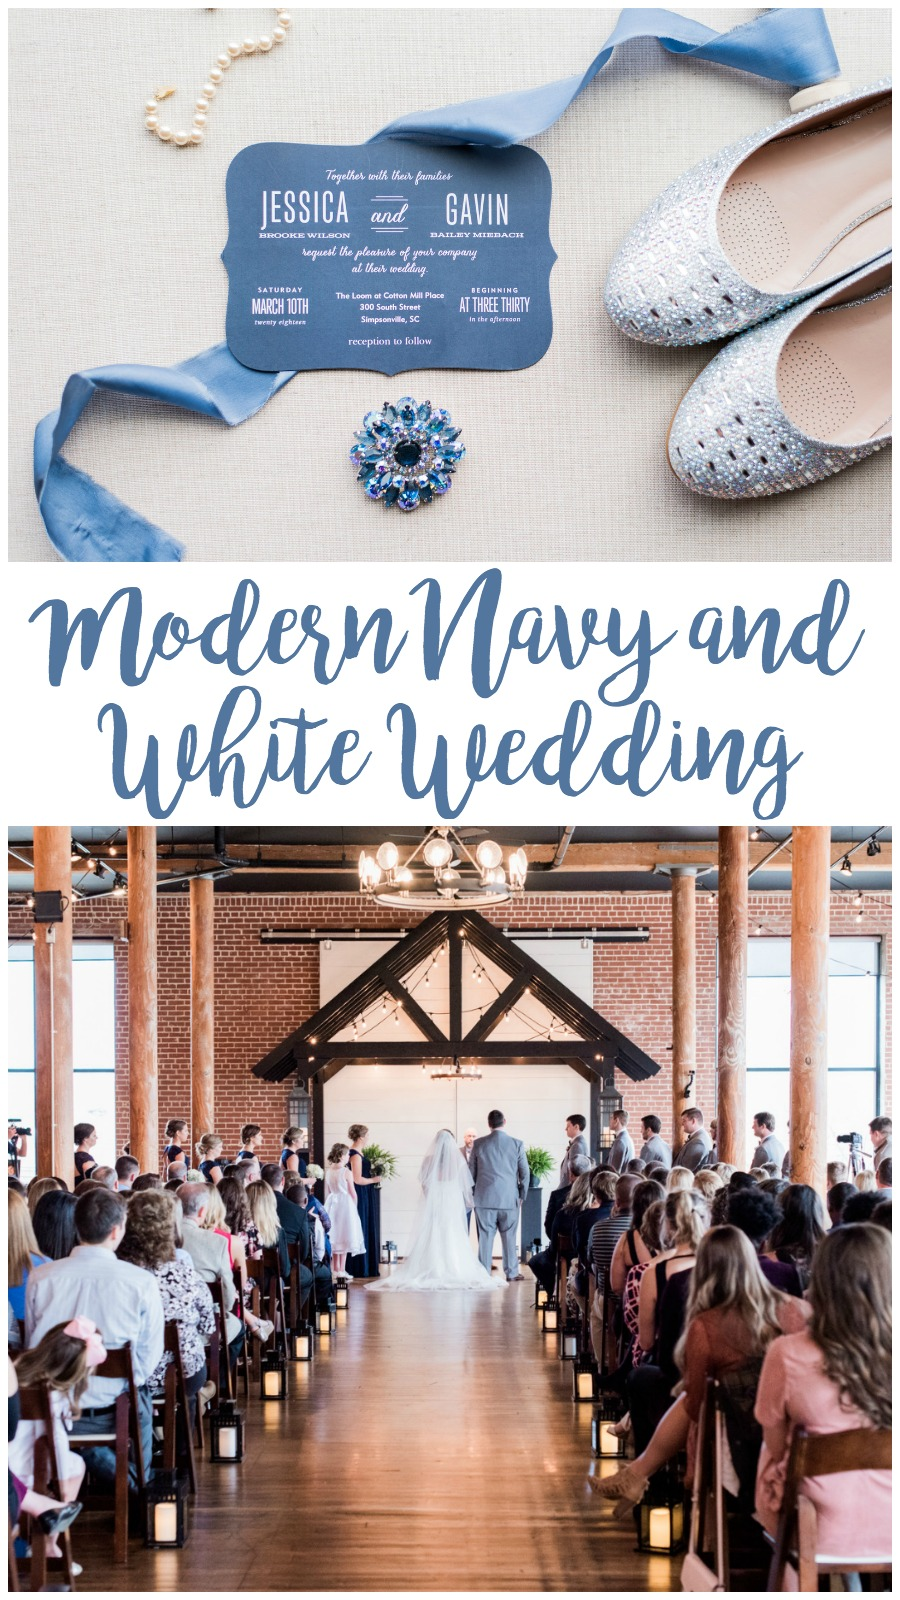 Jessica and Gavin: Modern Urban Wedding at the Loom at Cotton Mill Place   Palmetto State Weddings   Greenville wedding venue   navy and white wedding inspiration